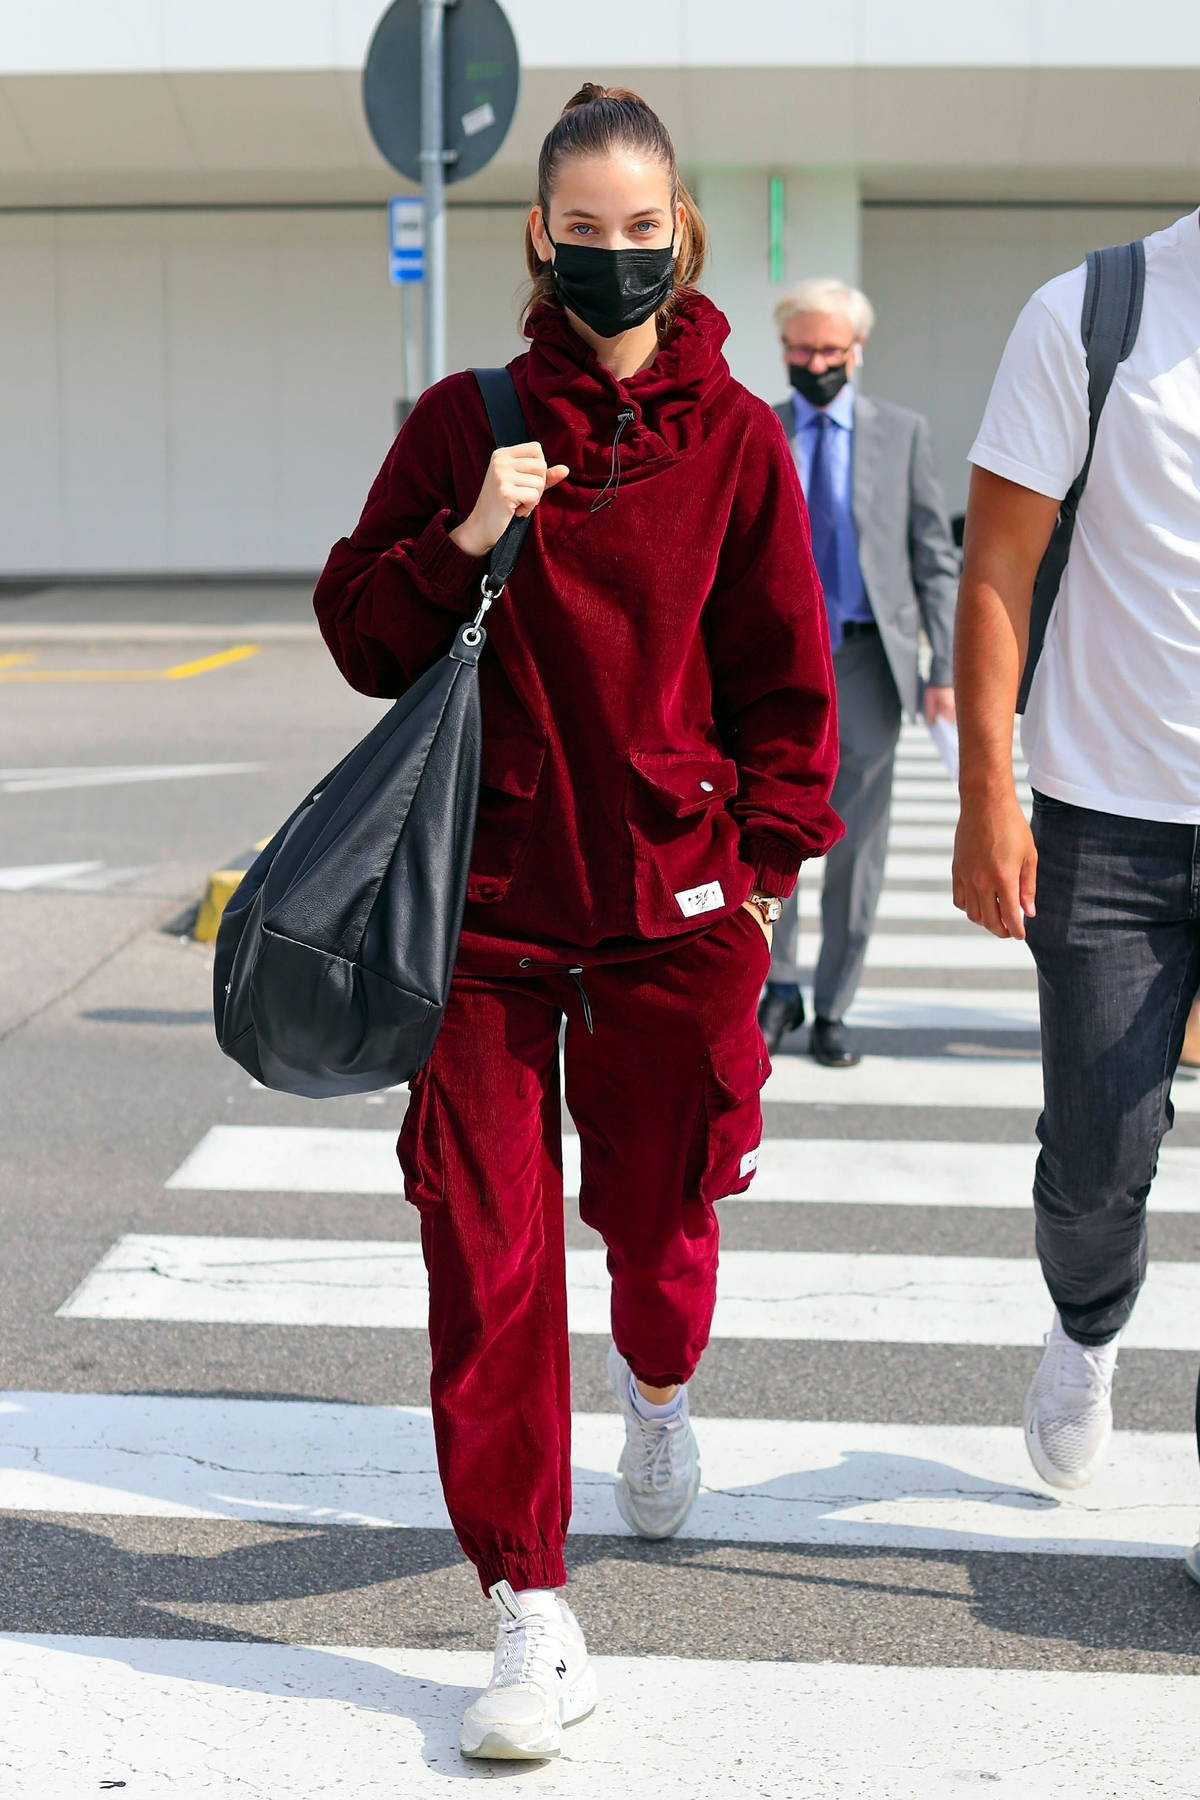 Barbara Palvin stays cozy in maroon sweatsuit while arriving in Milan, Italy